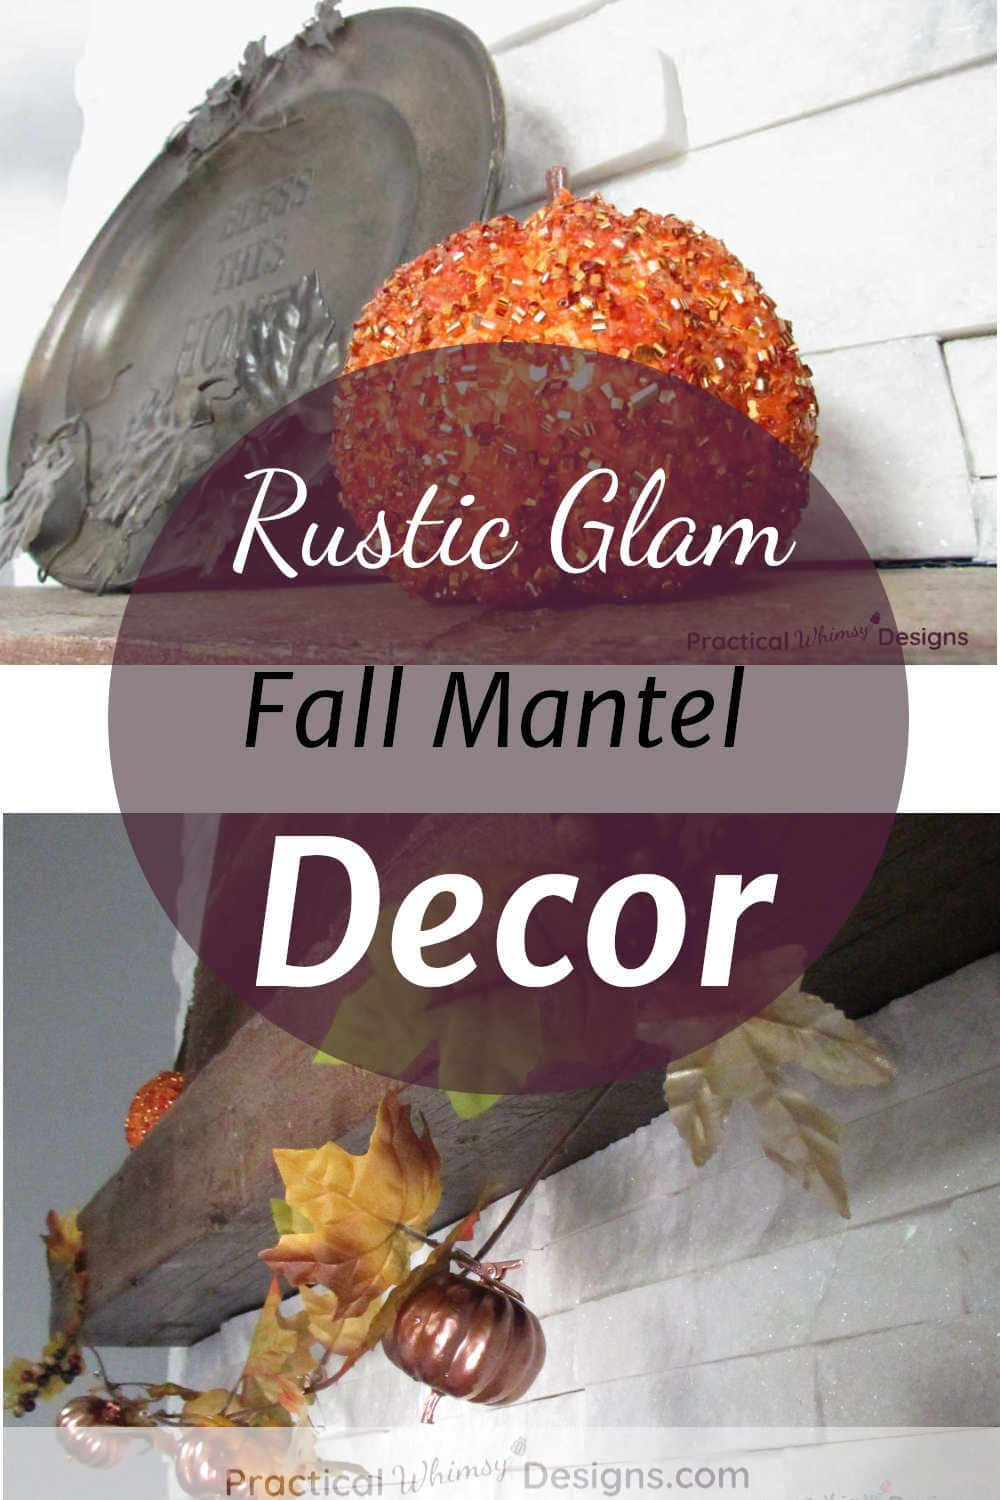 Rustic glam fall mantel decor with pumpkins and garland on mantel